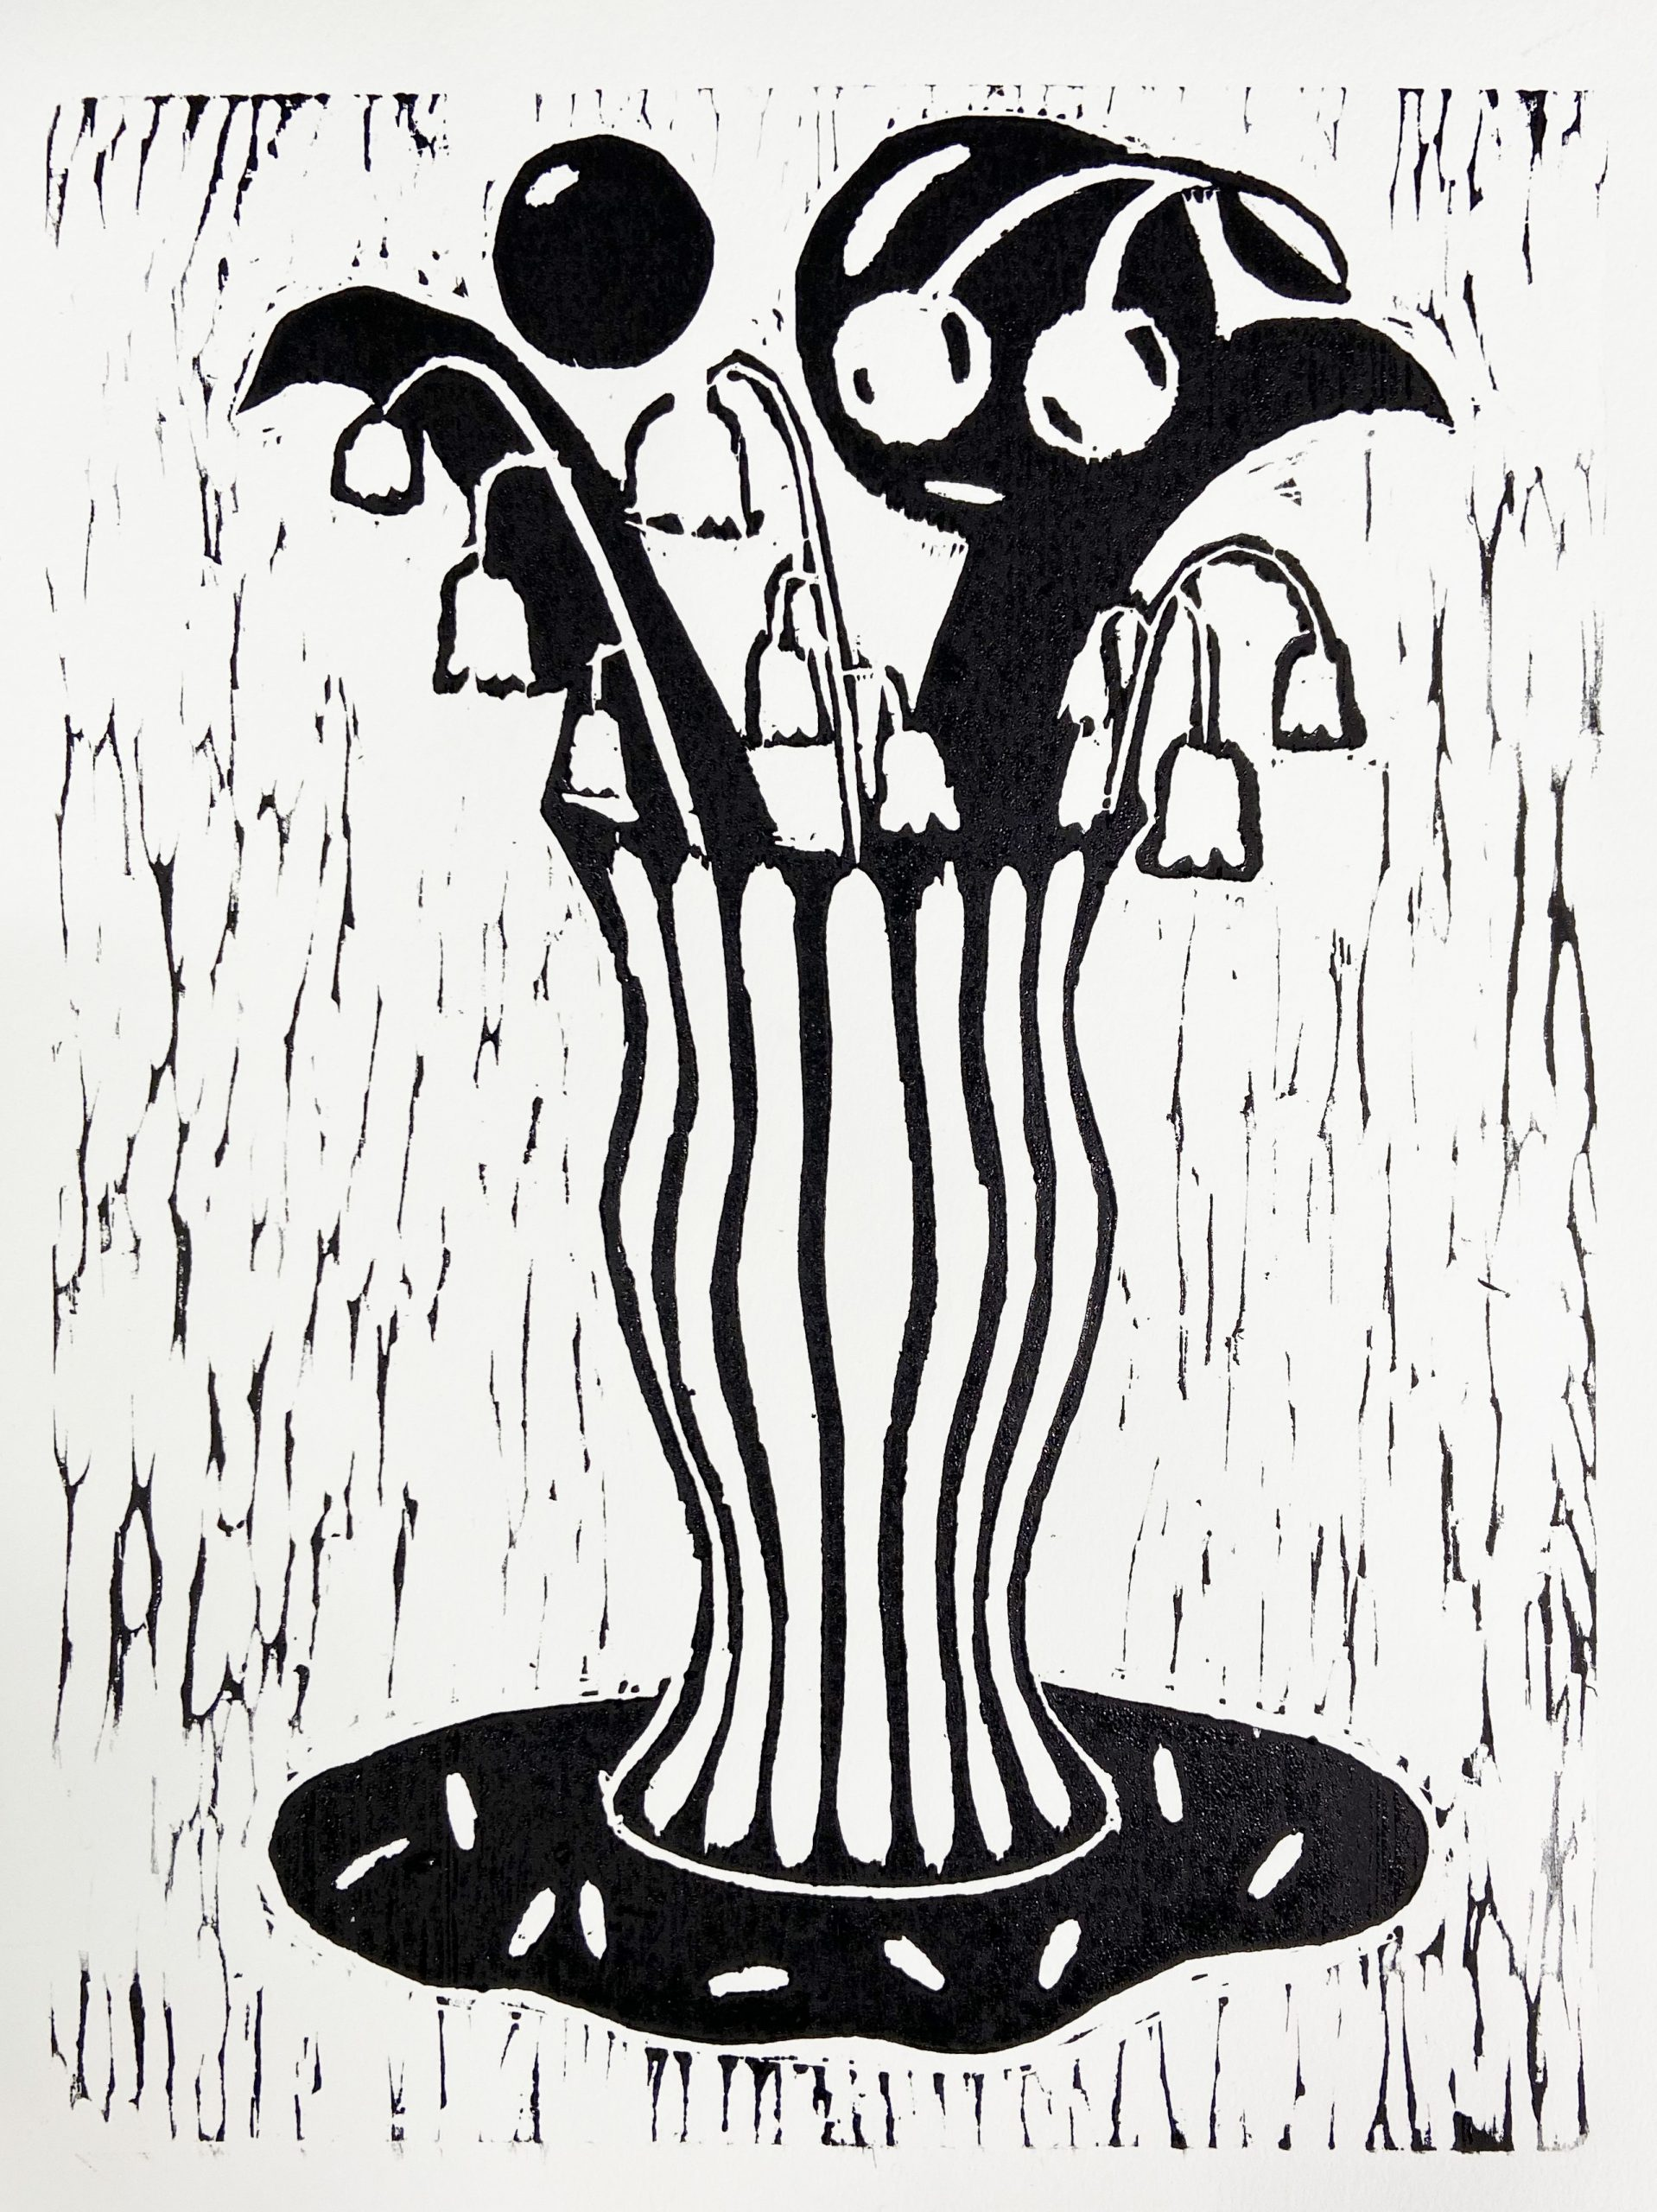 woodblock print of plants in a vase by Katie May Howarth